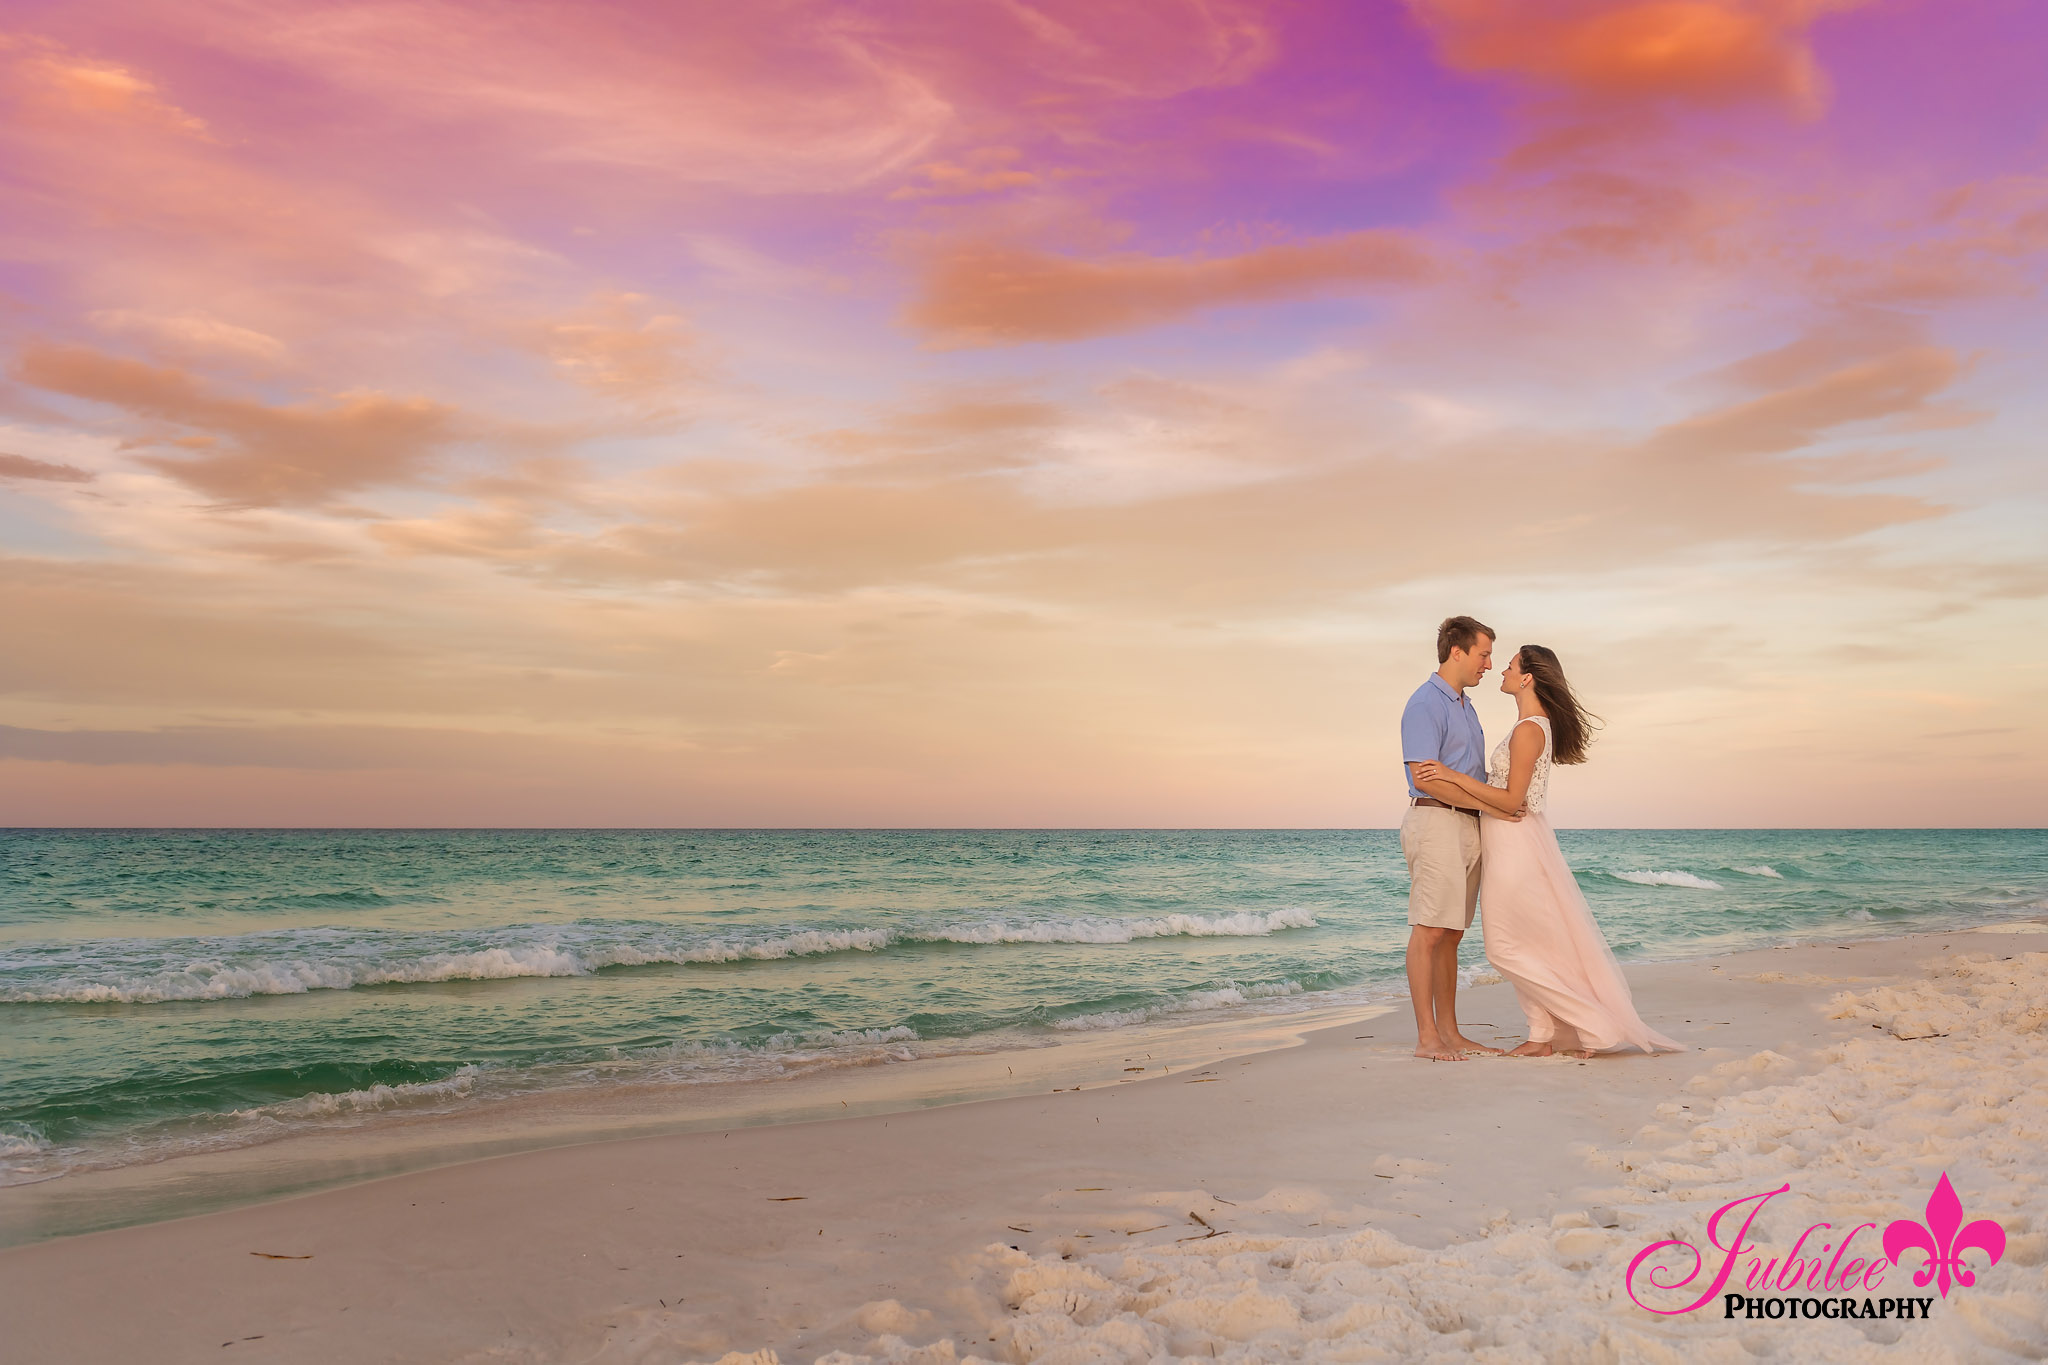 Hulsey Family – Sunrise Destin Photographer